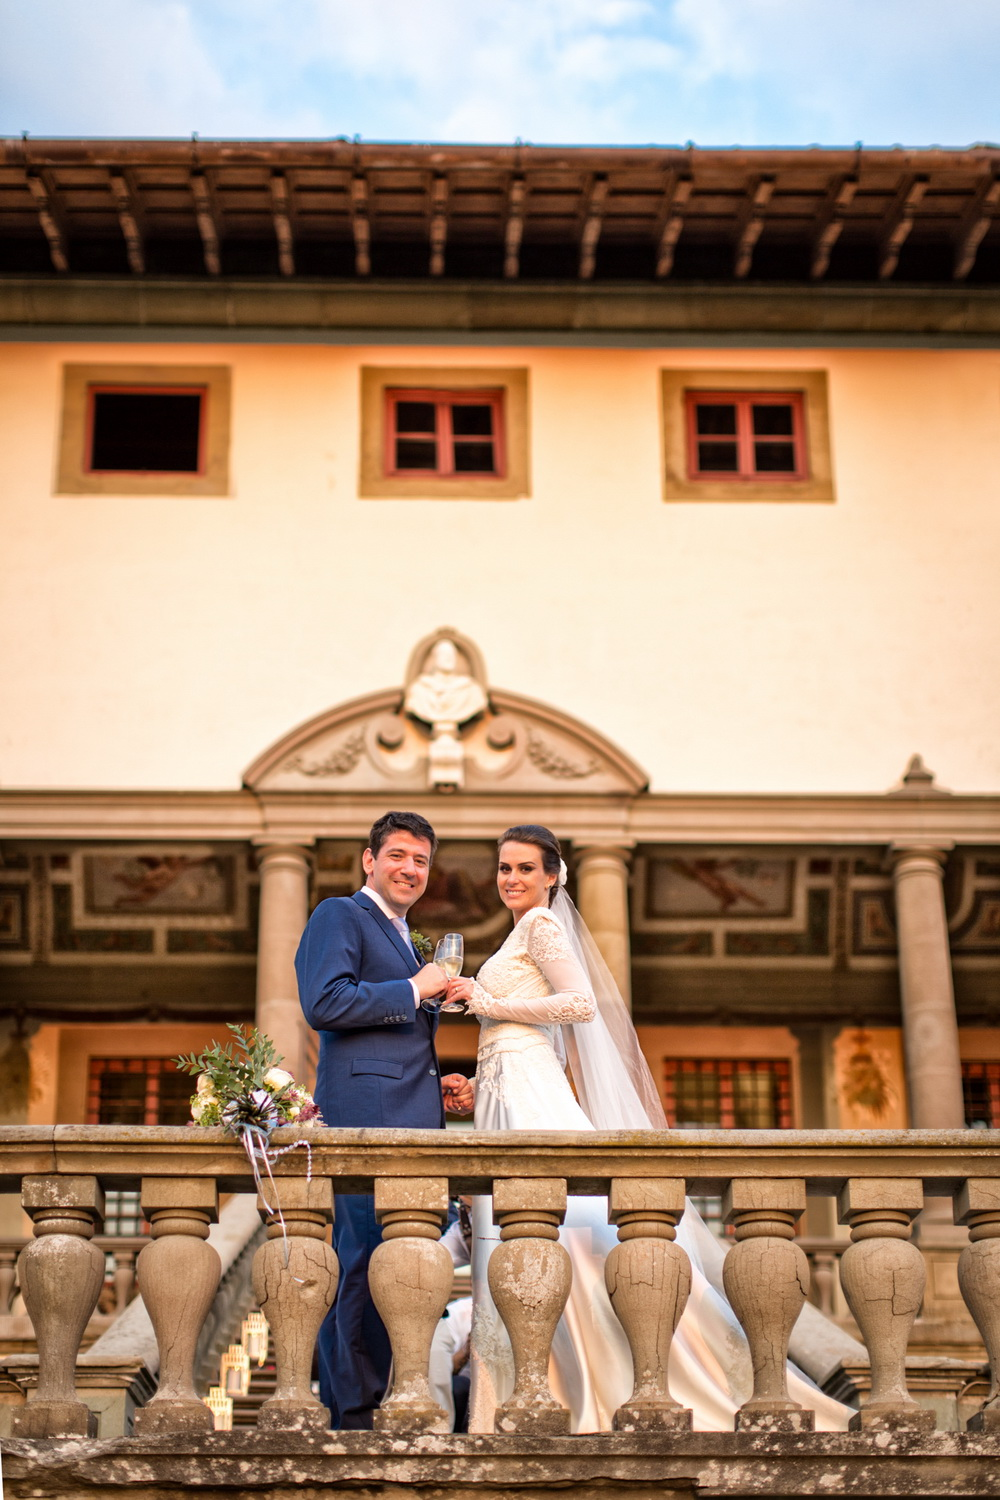 destination wedding na toscana | caroline e fernando Destination Wedding na Toscana | Caroline e Fernando marco zammarchi destination wedding 50